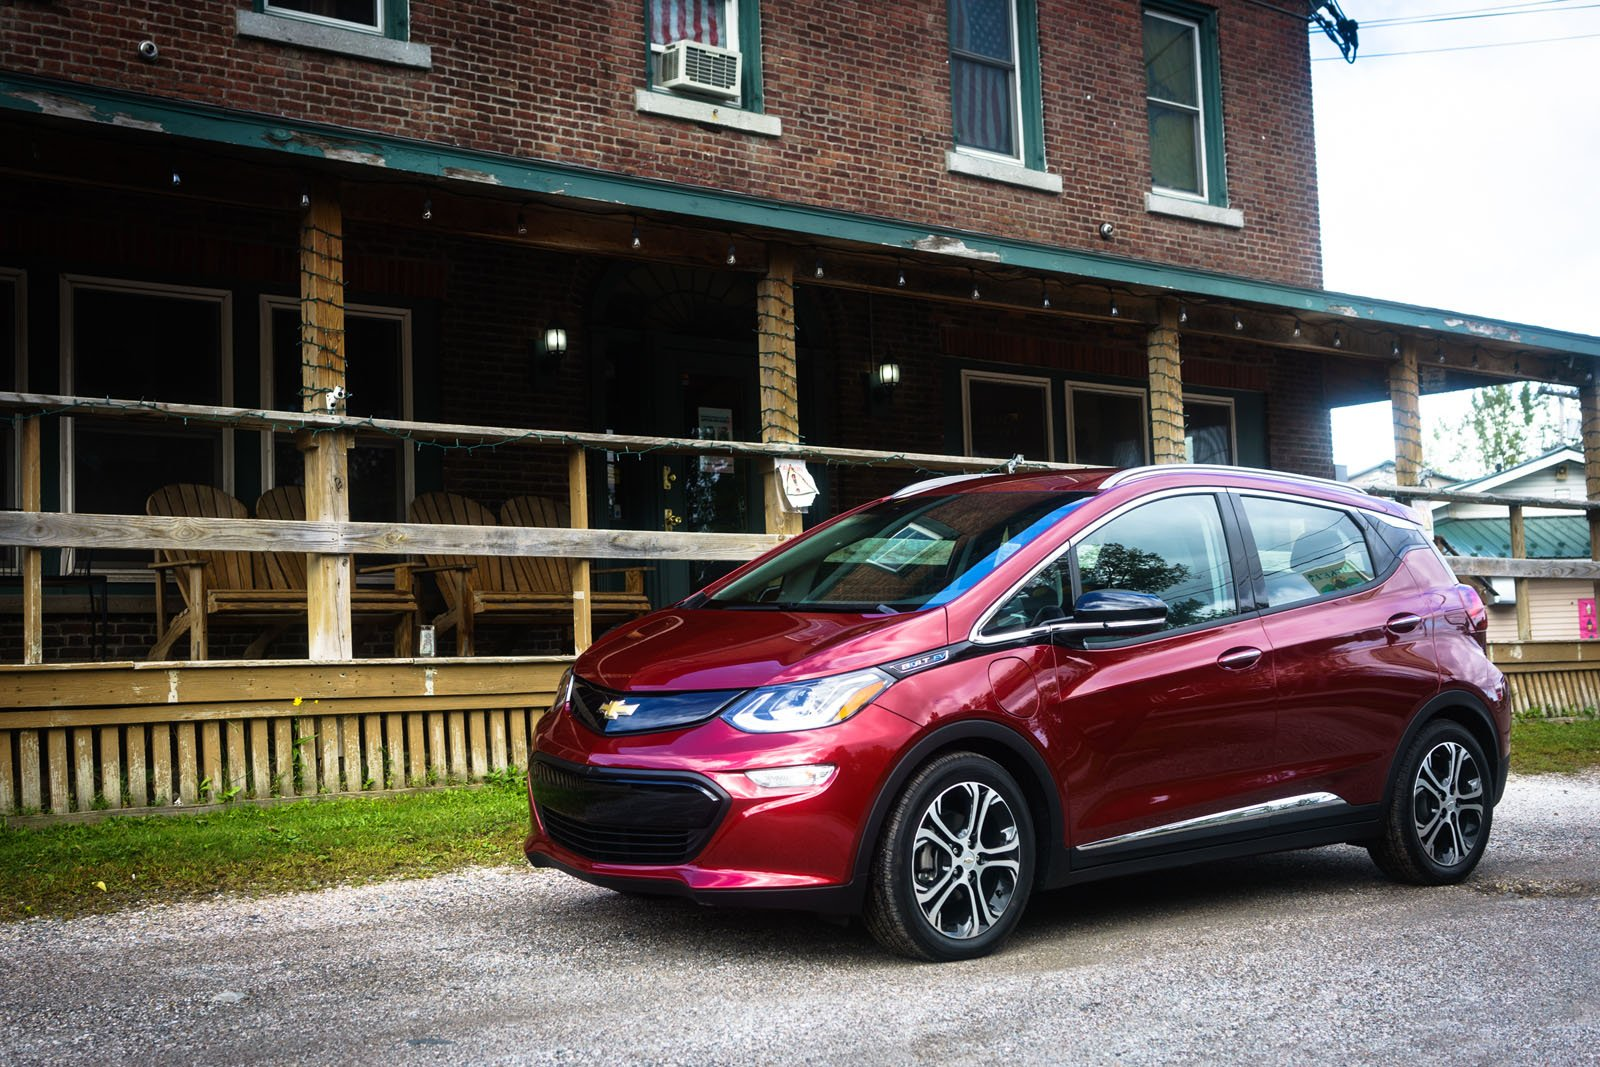 2019 Chevrolet Bolt Ev Review 08